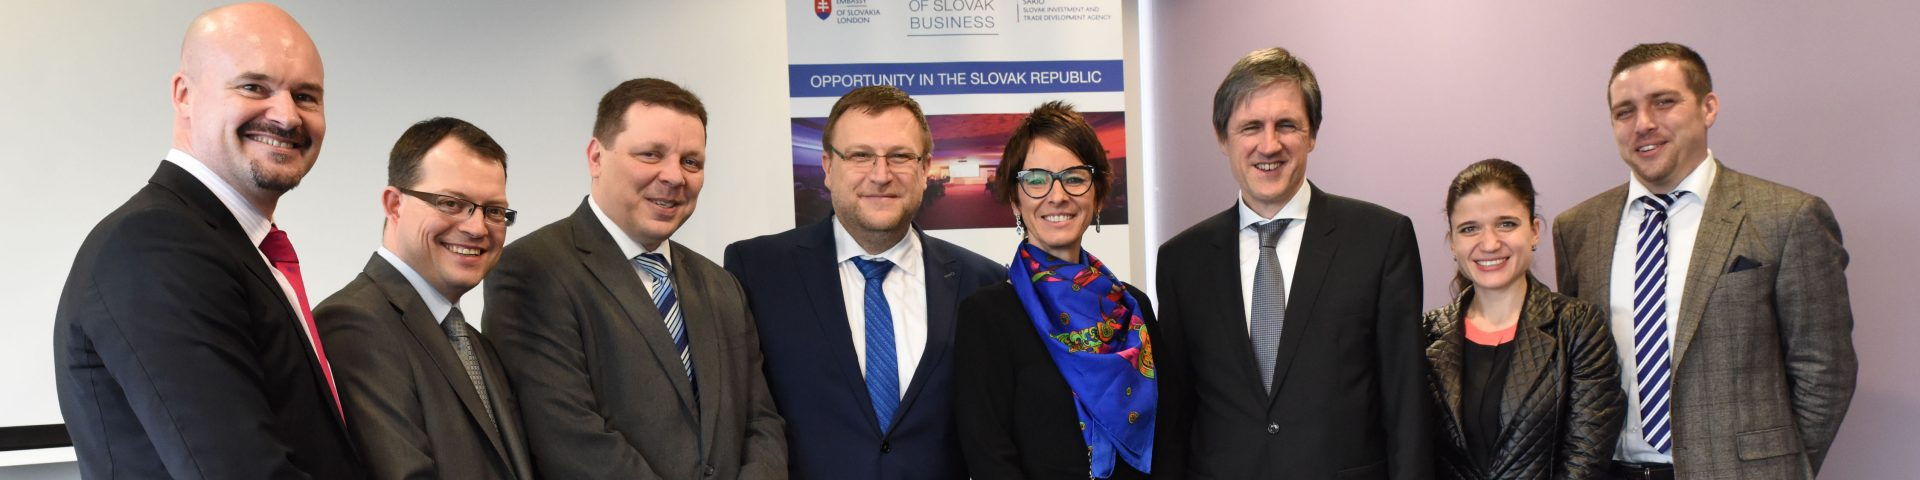 The best business partners Slovakia has to offer